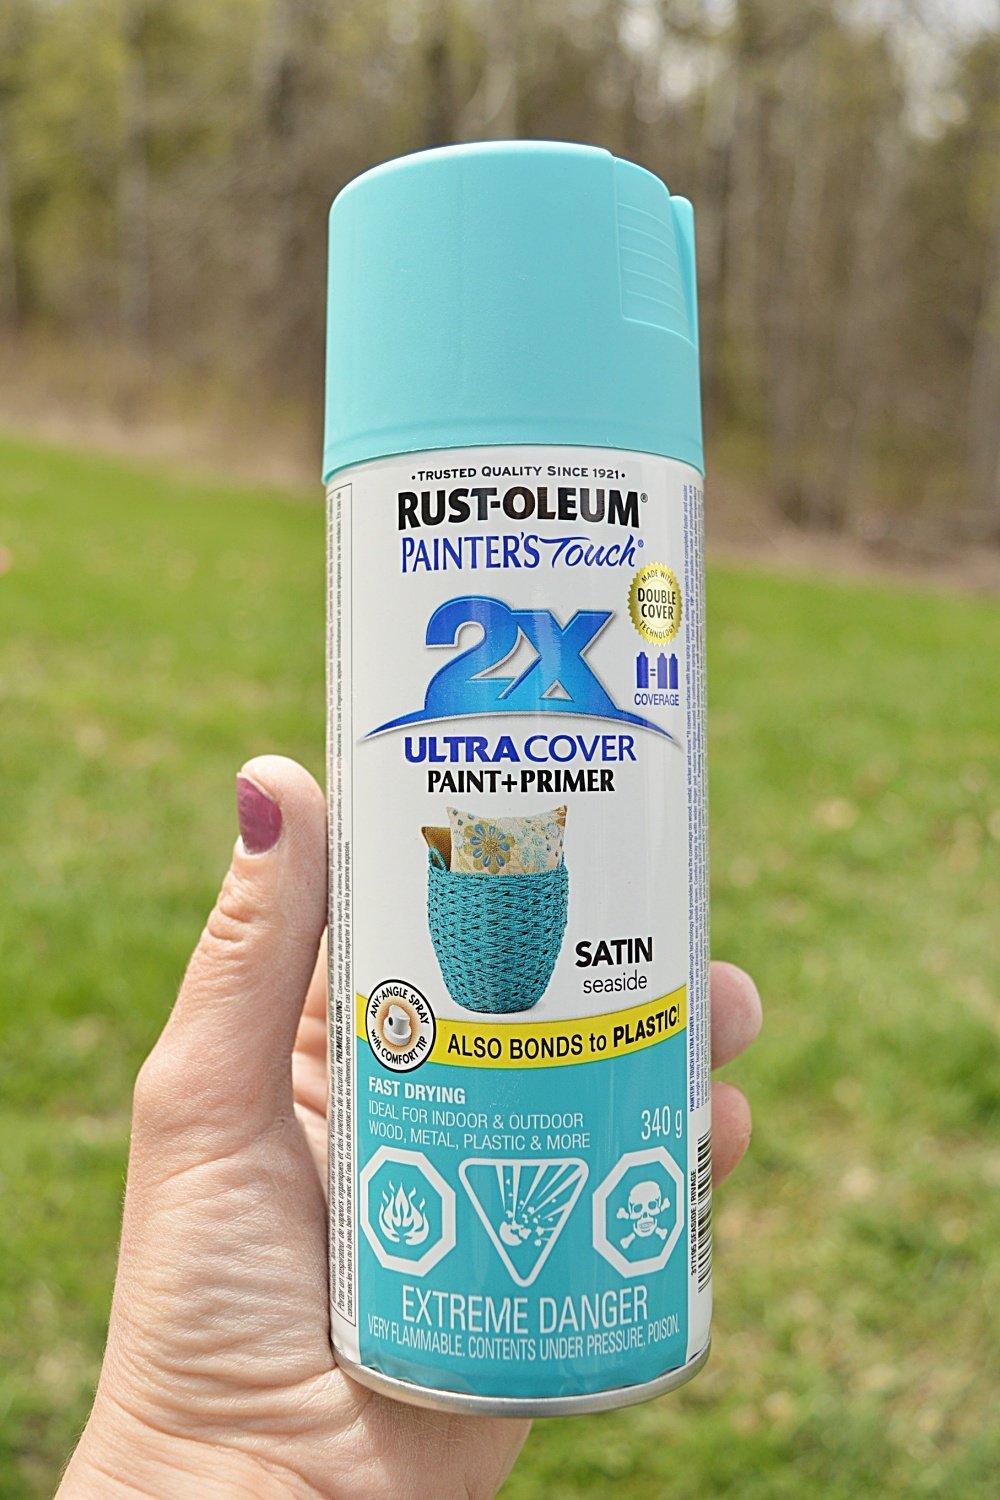 rust-oleum painters touch seaside satin